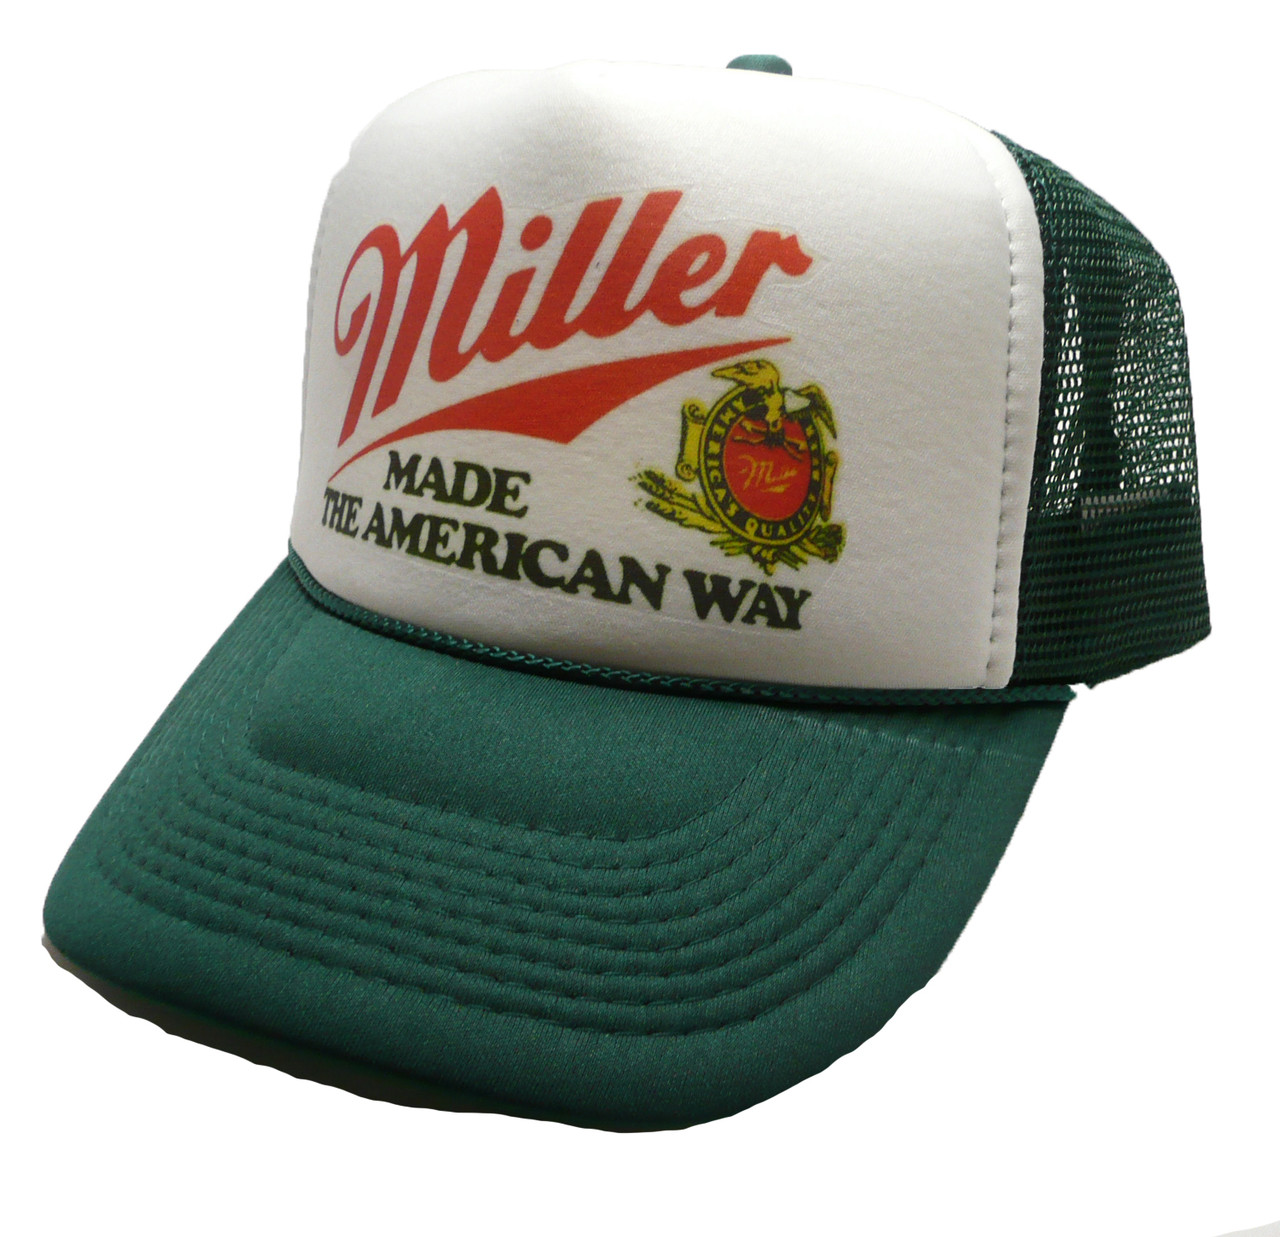 9aa3fa610 Miller Beer Made the American way Hat Trucker hat snap back style cap